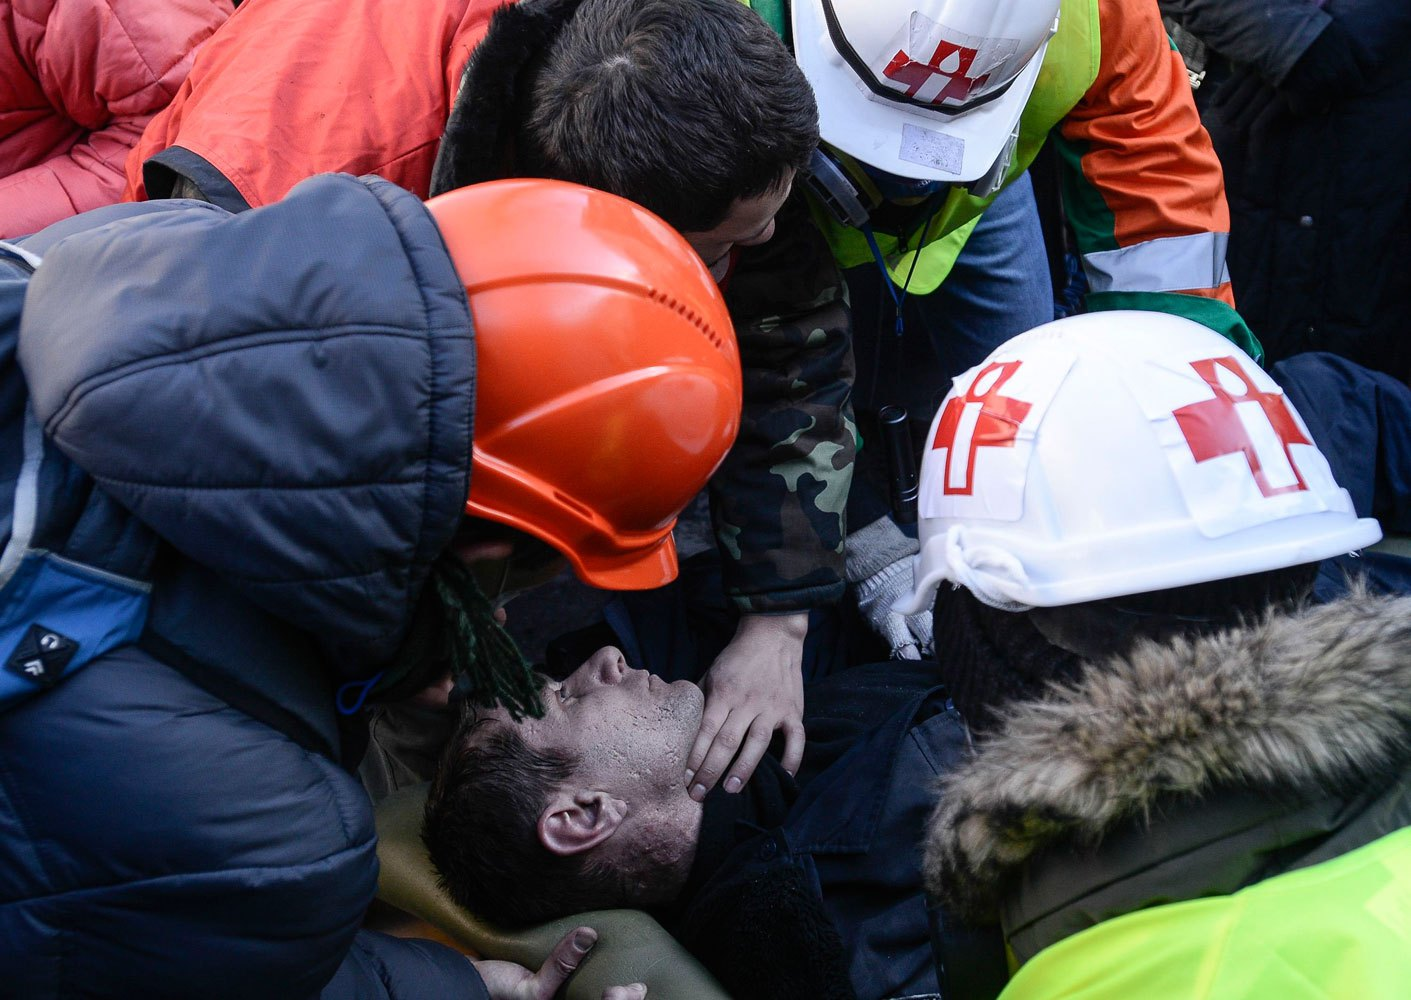 An Interior Ministry member, who was injured during clashes with anti-government protesters, receives medical treatment as he lies on a stretcher in Kiev February 18, 2014.